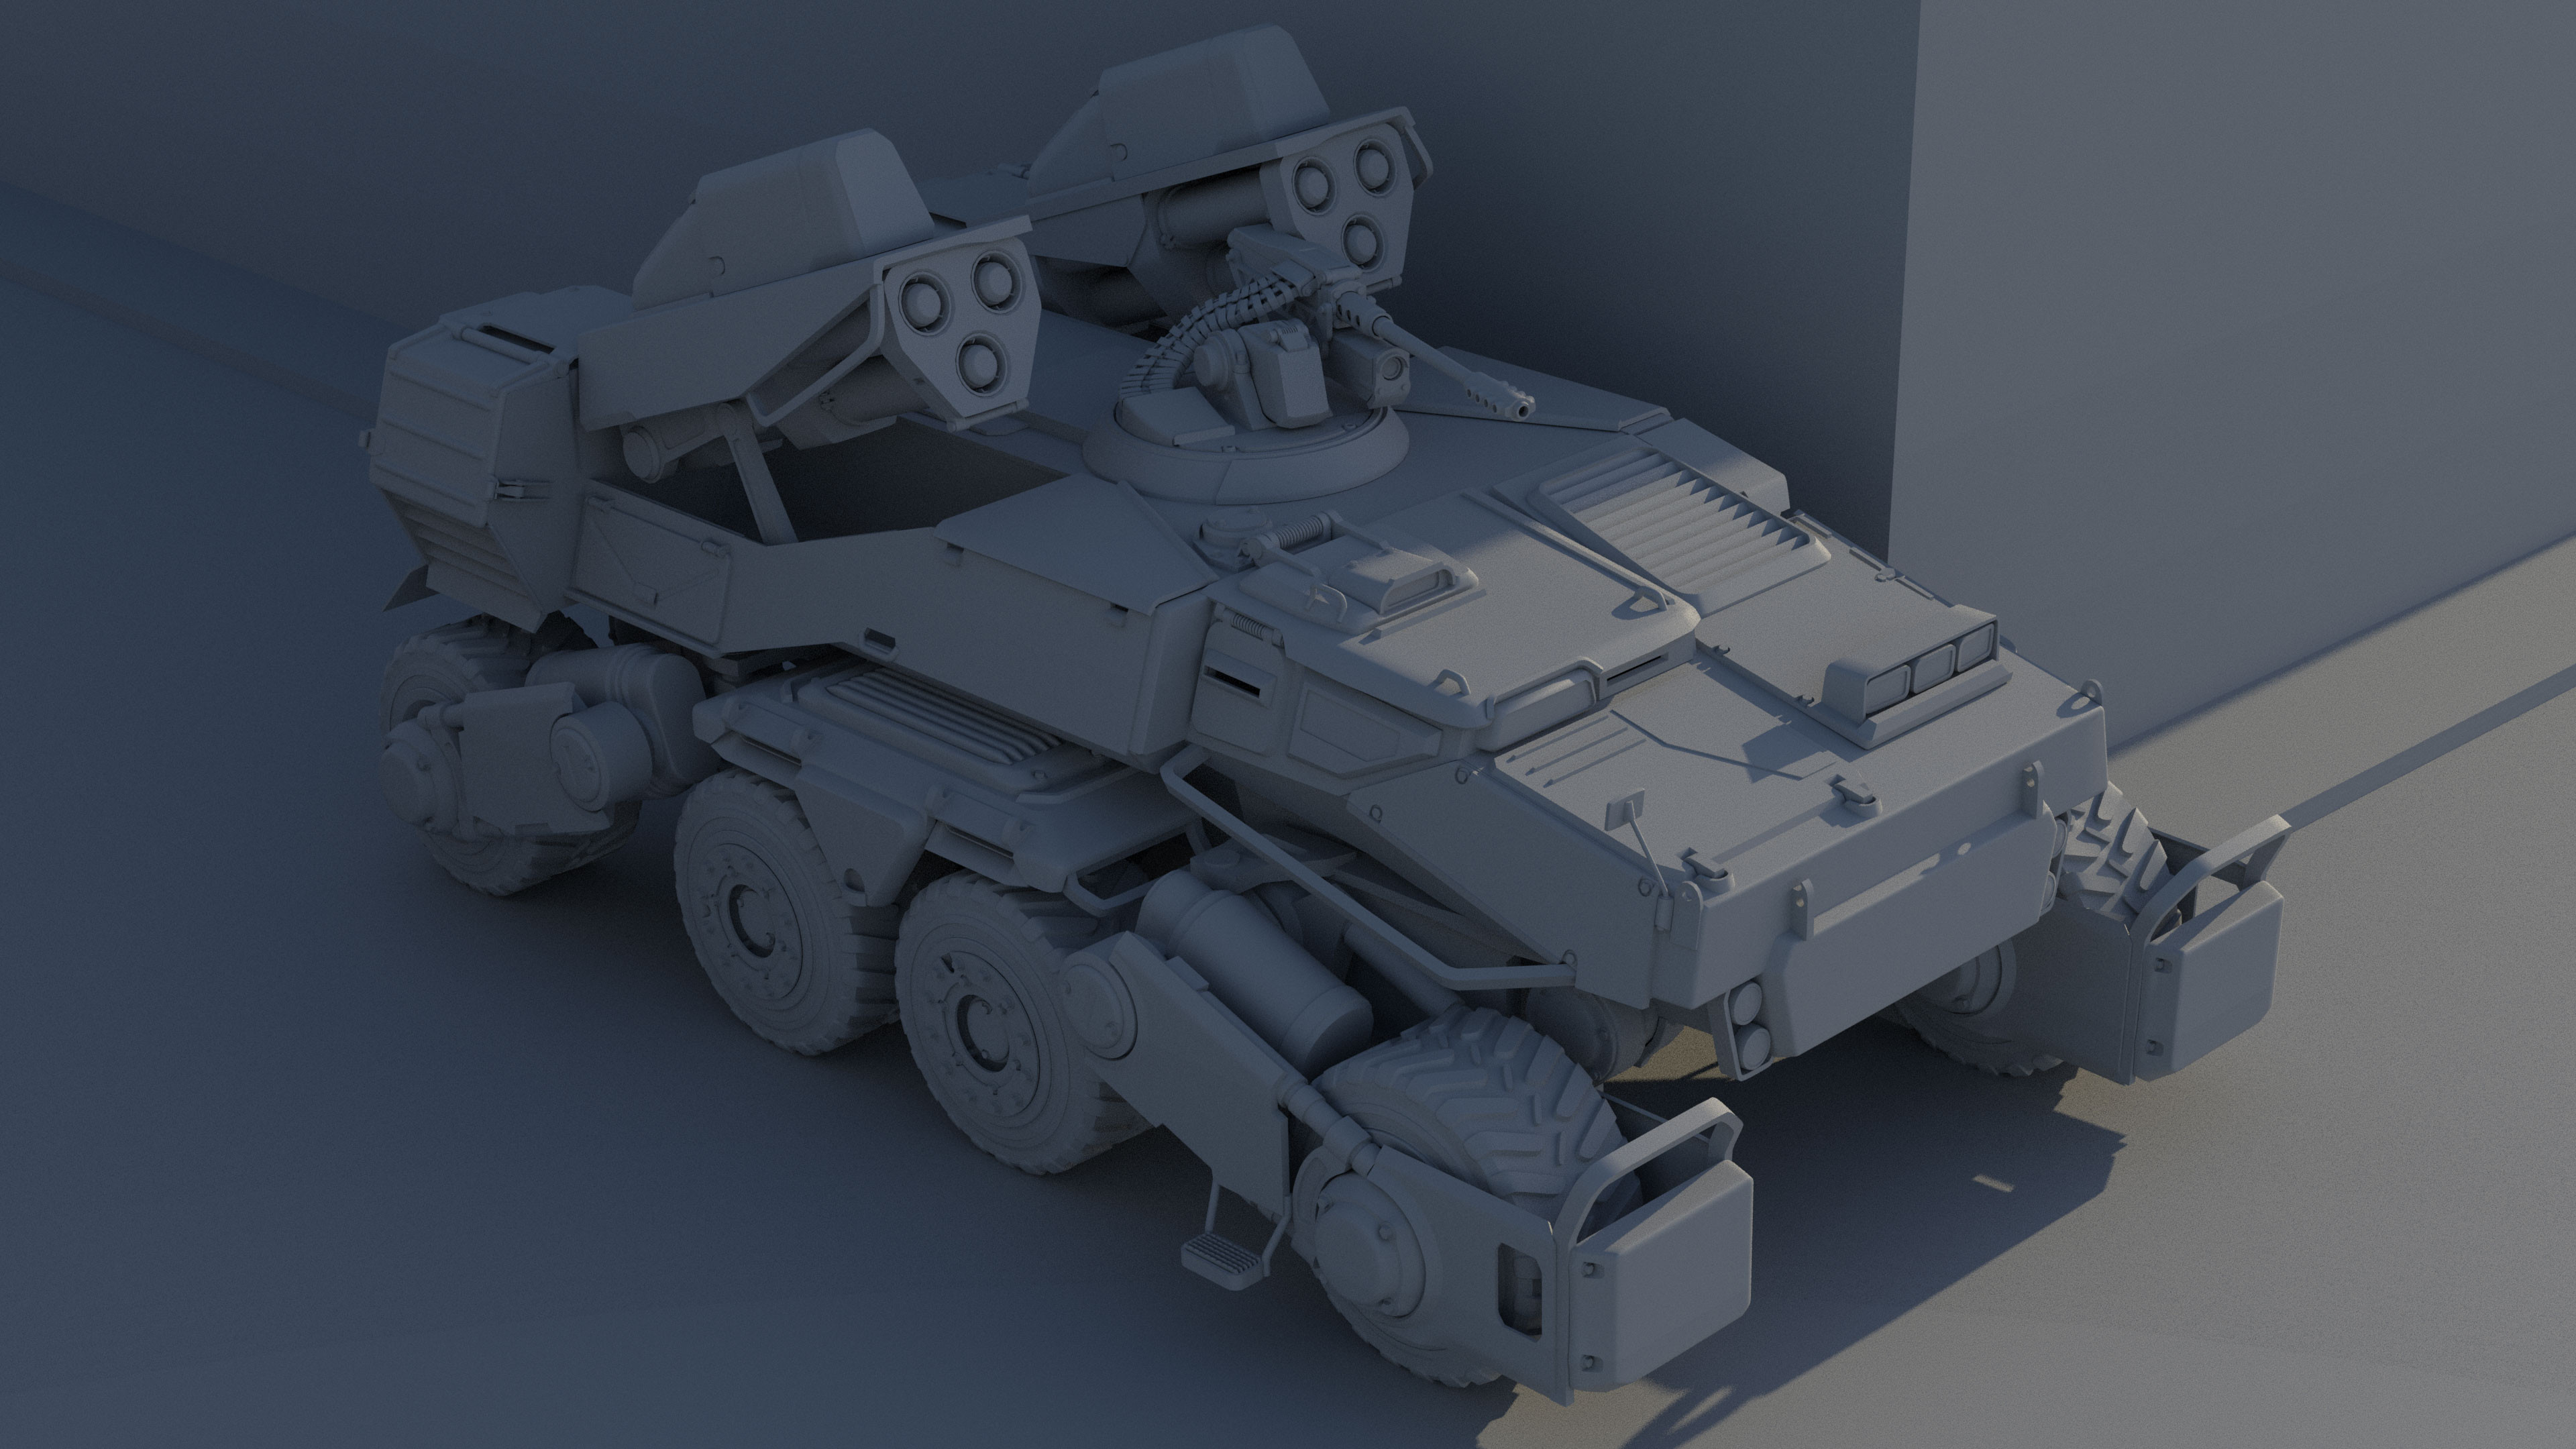 Alternate angle. This might be better if you're just doing to a concept for a vehicle modeler for an RTS or something.